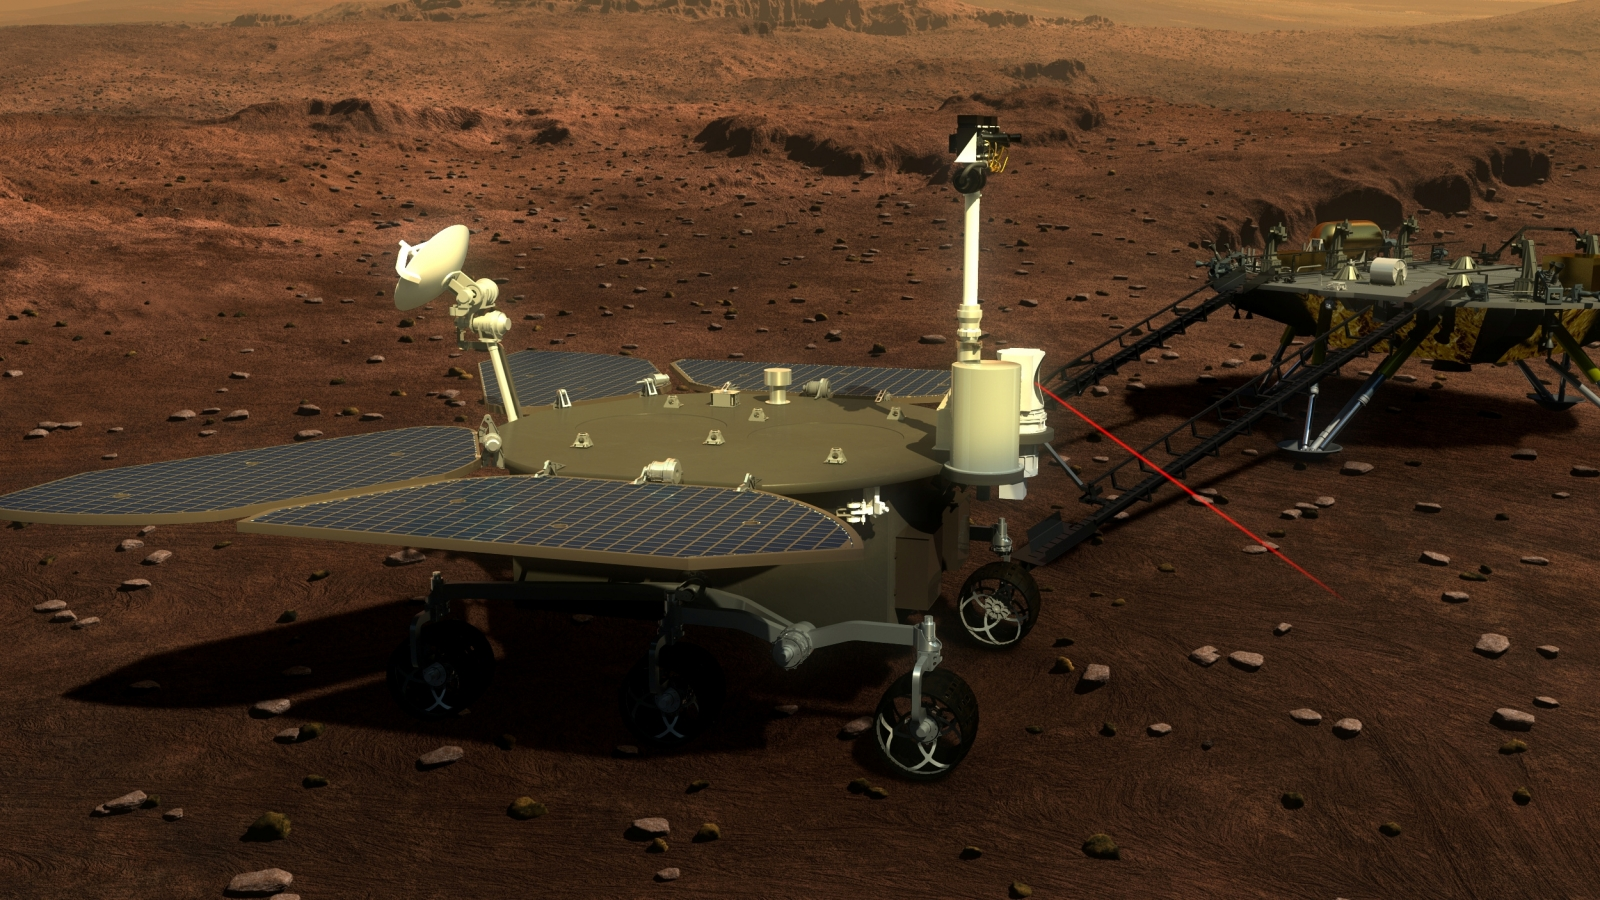 2020 China Mars Mission China Unveils Probe And Rover Details